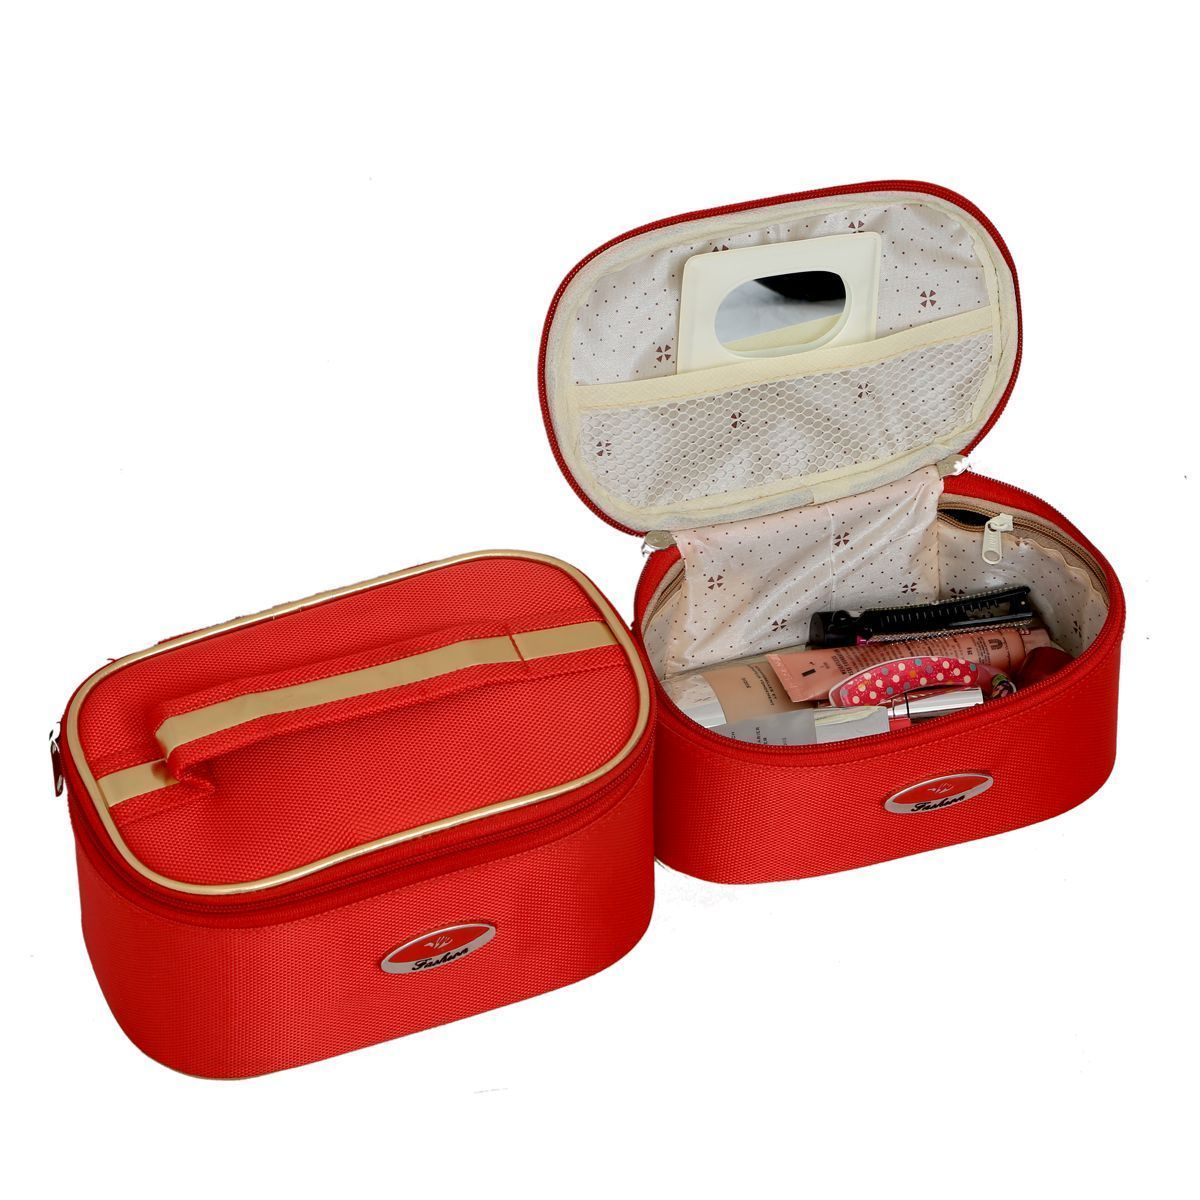 "Kuber Industriesâ""¢ Bridal Vanity box,Cosmetic Organiser,Make Up Kit,Multi Purpose Kit Set of 2 Pcs Red (KI19632)"